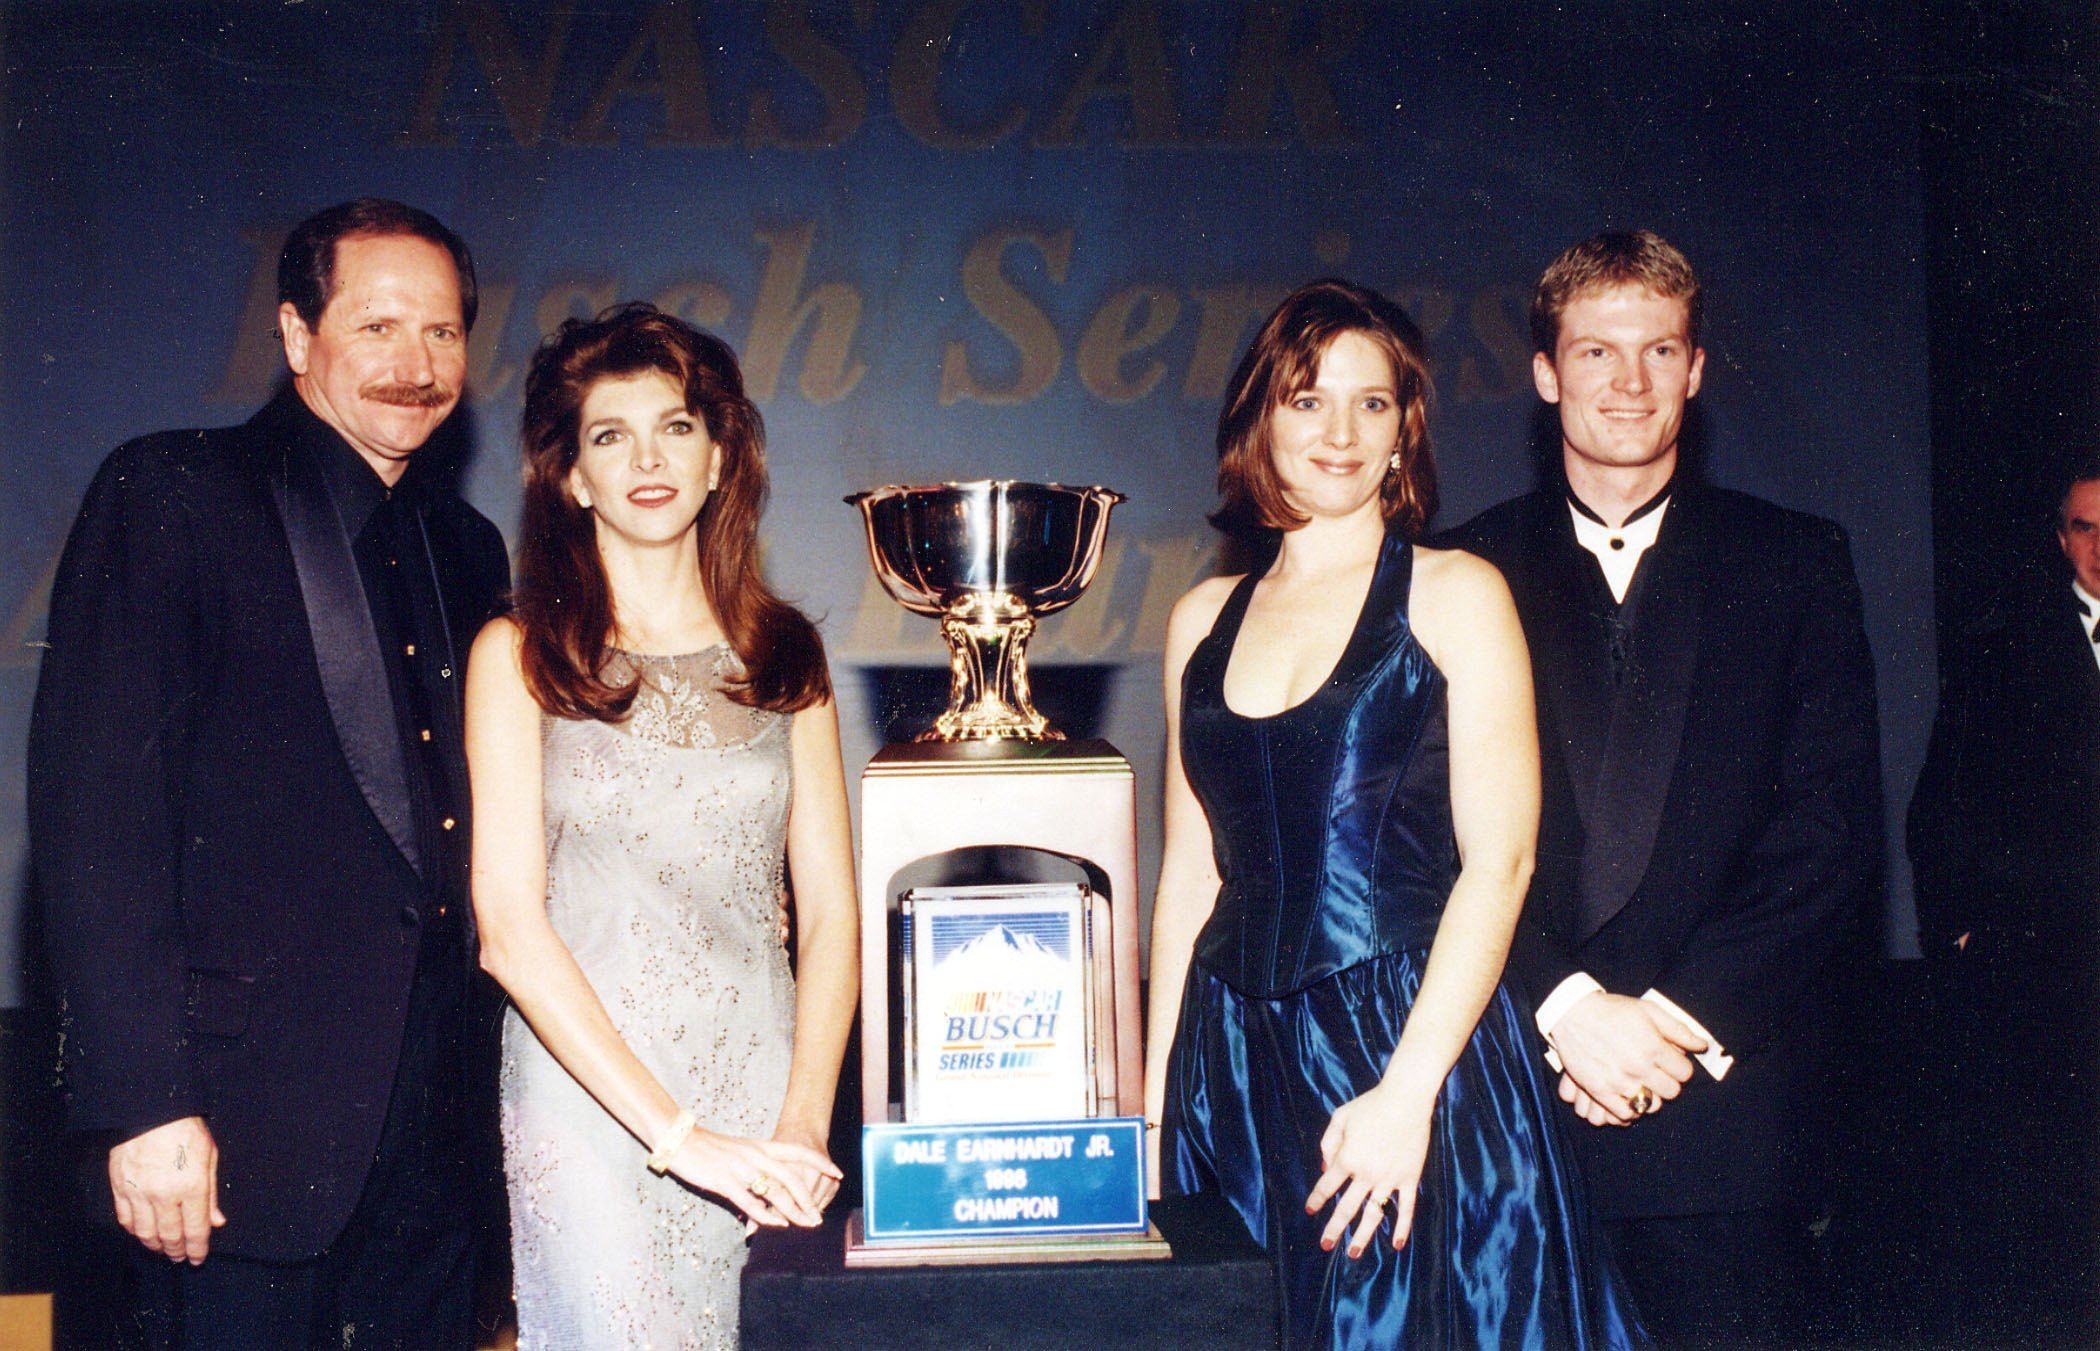 Dale Earnhardt Sr., with wife Teresa, daughter Kelley and son Dale Earnhardt Jr., who received the NASCAR Busch Series Championship Cup in 1998 in New York | Source: Getty Images